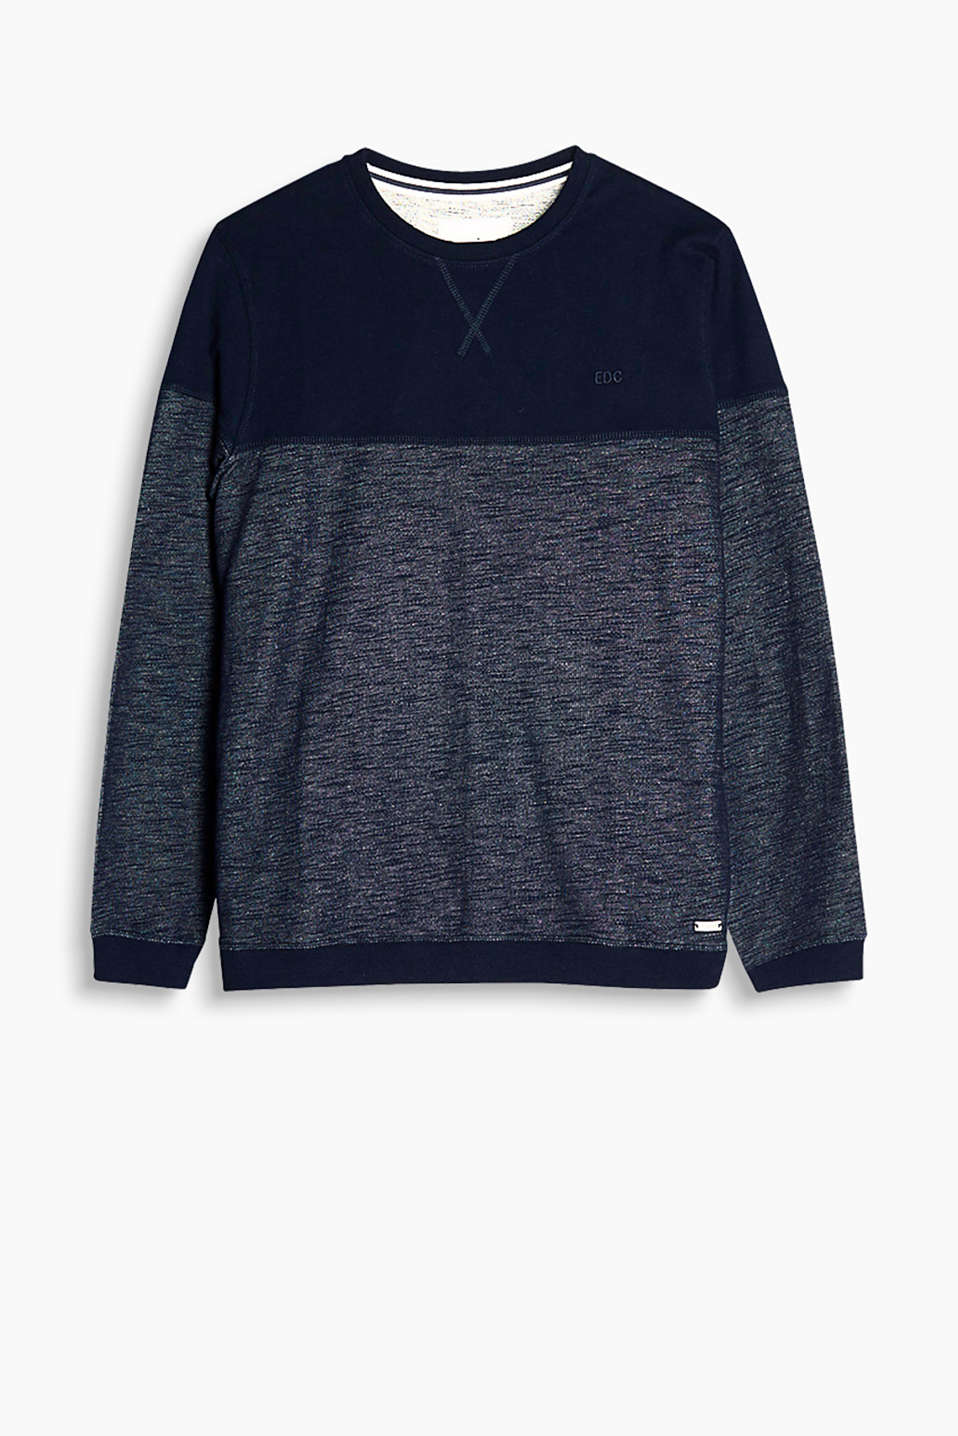 In a texture mix: sweatshirt with ribbed trims on the collar, cuffs and hem, 100% cotton